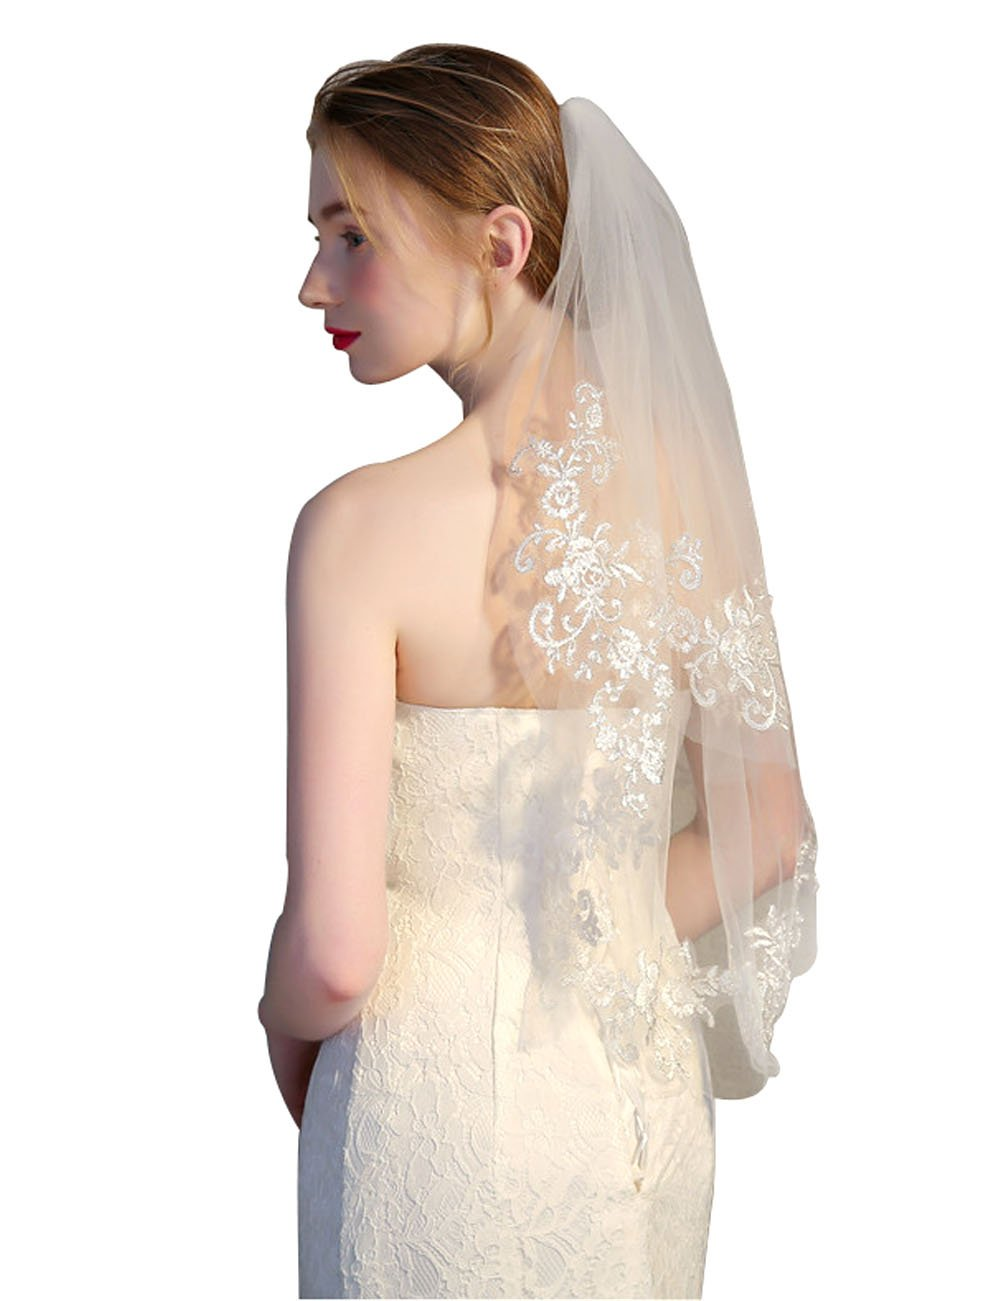 GRACIN Women's Lace Tulle Appliqued Edge Bridal Wedding Veil with Comb (Two layers, Ivory)